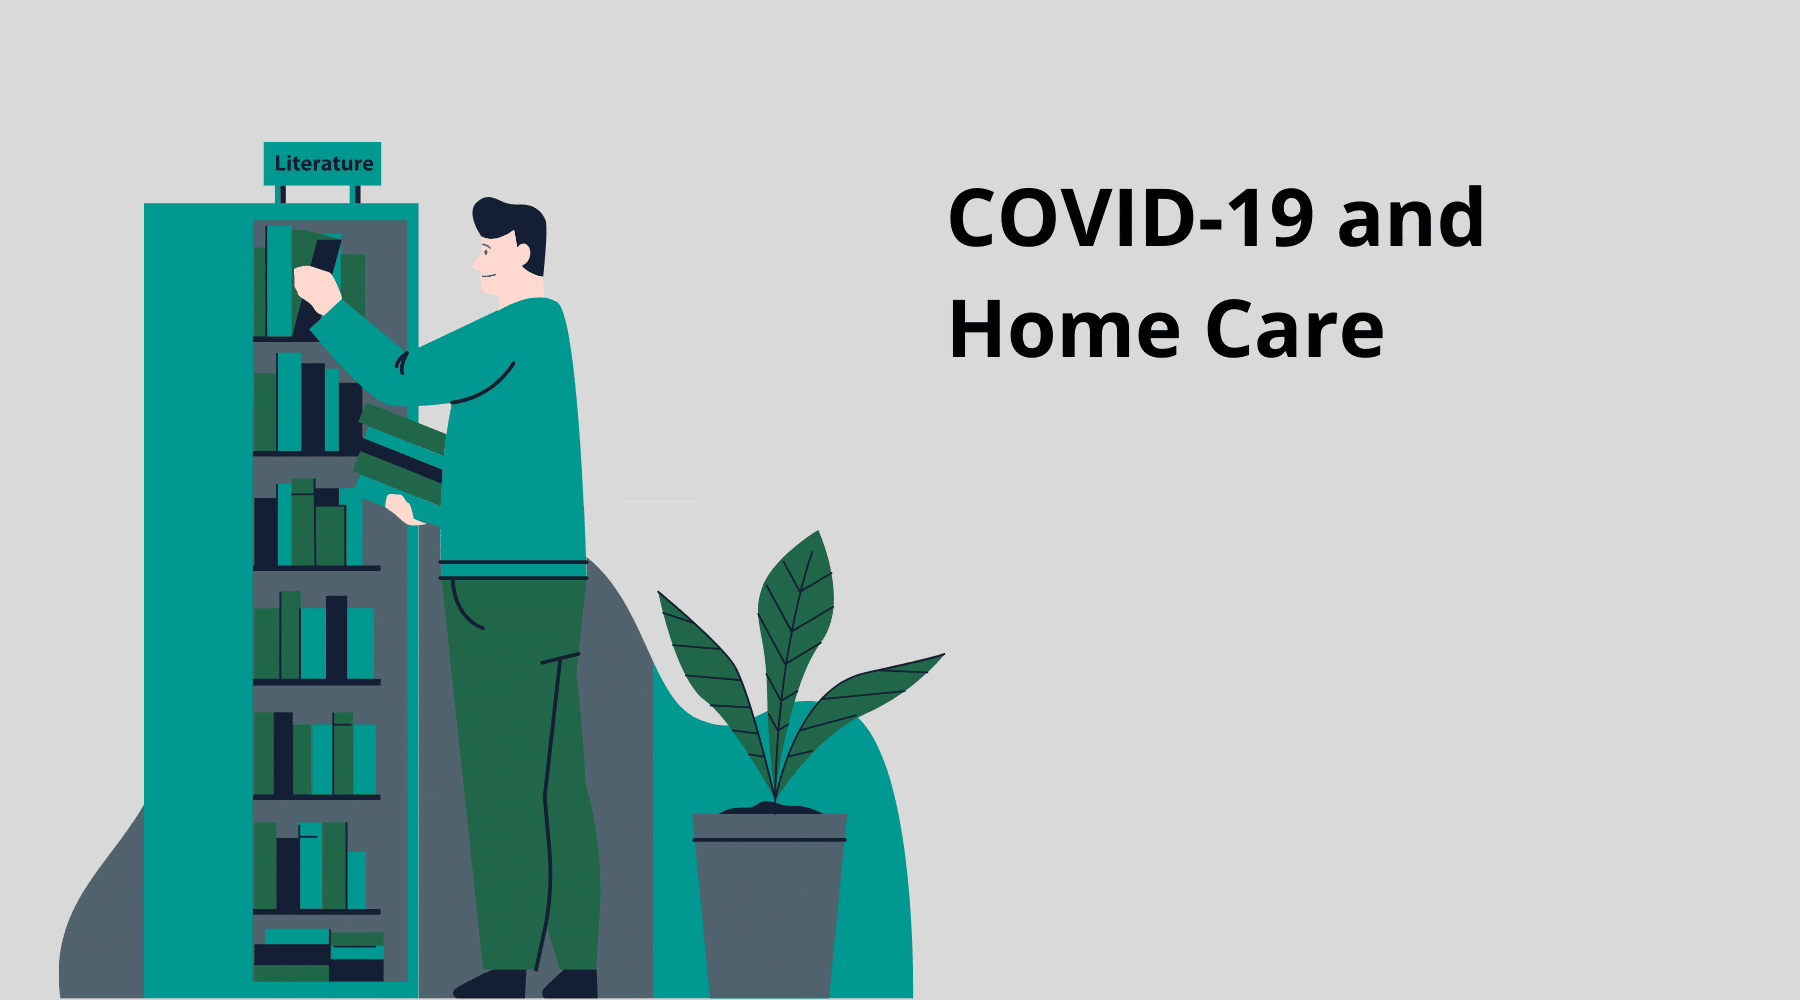 COVID-19 and Home Care - Useful Information